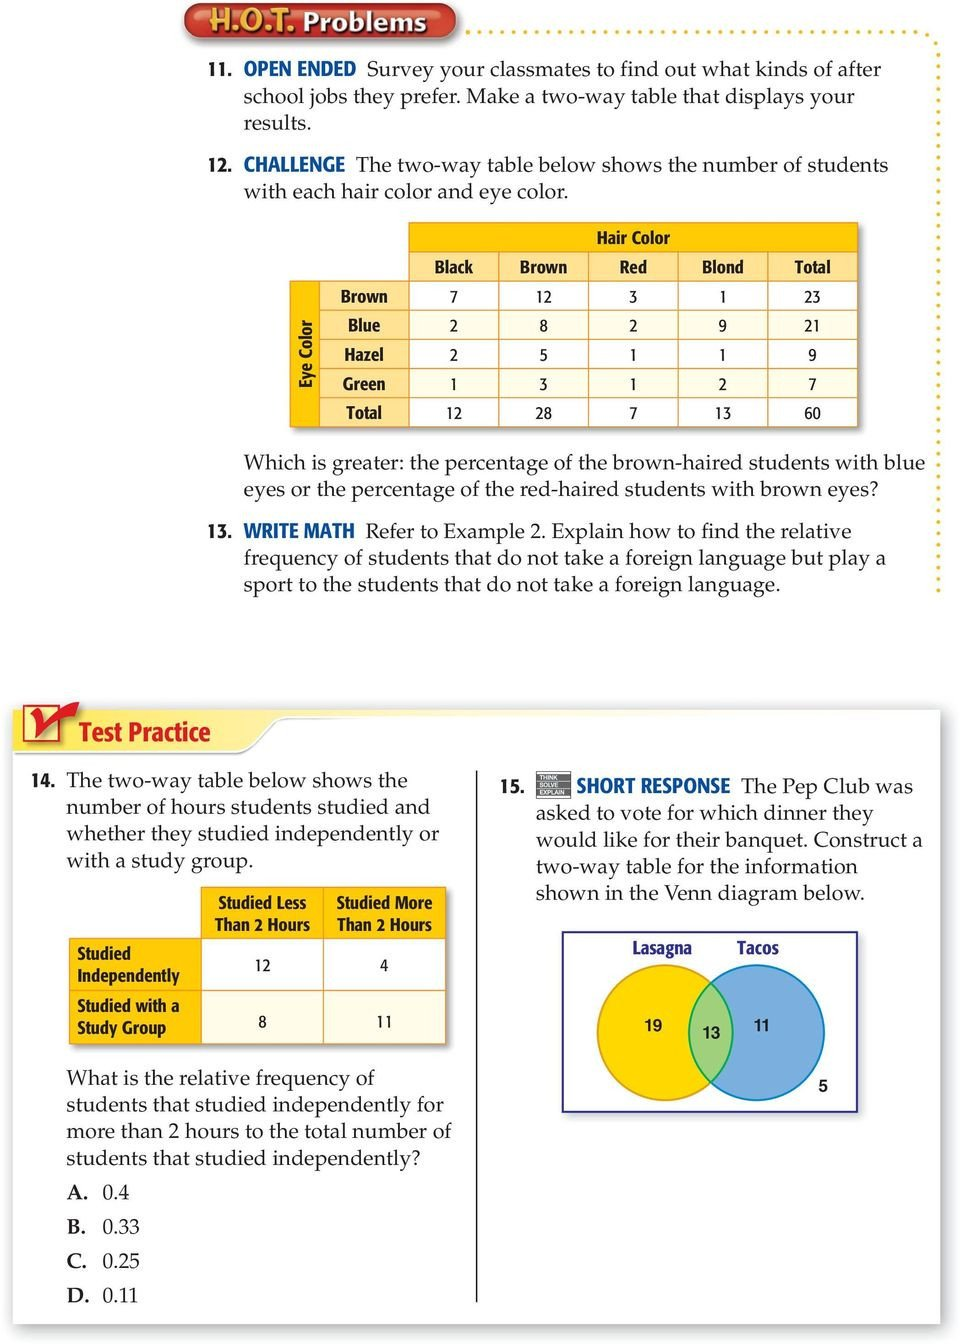 2 Way Tables Worksheet Two Way Tables Lesson 16 Main Idea New Vocabulary Two Way